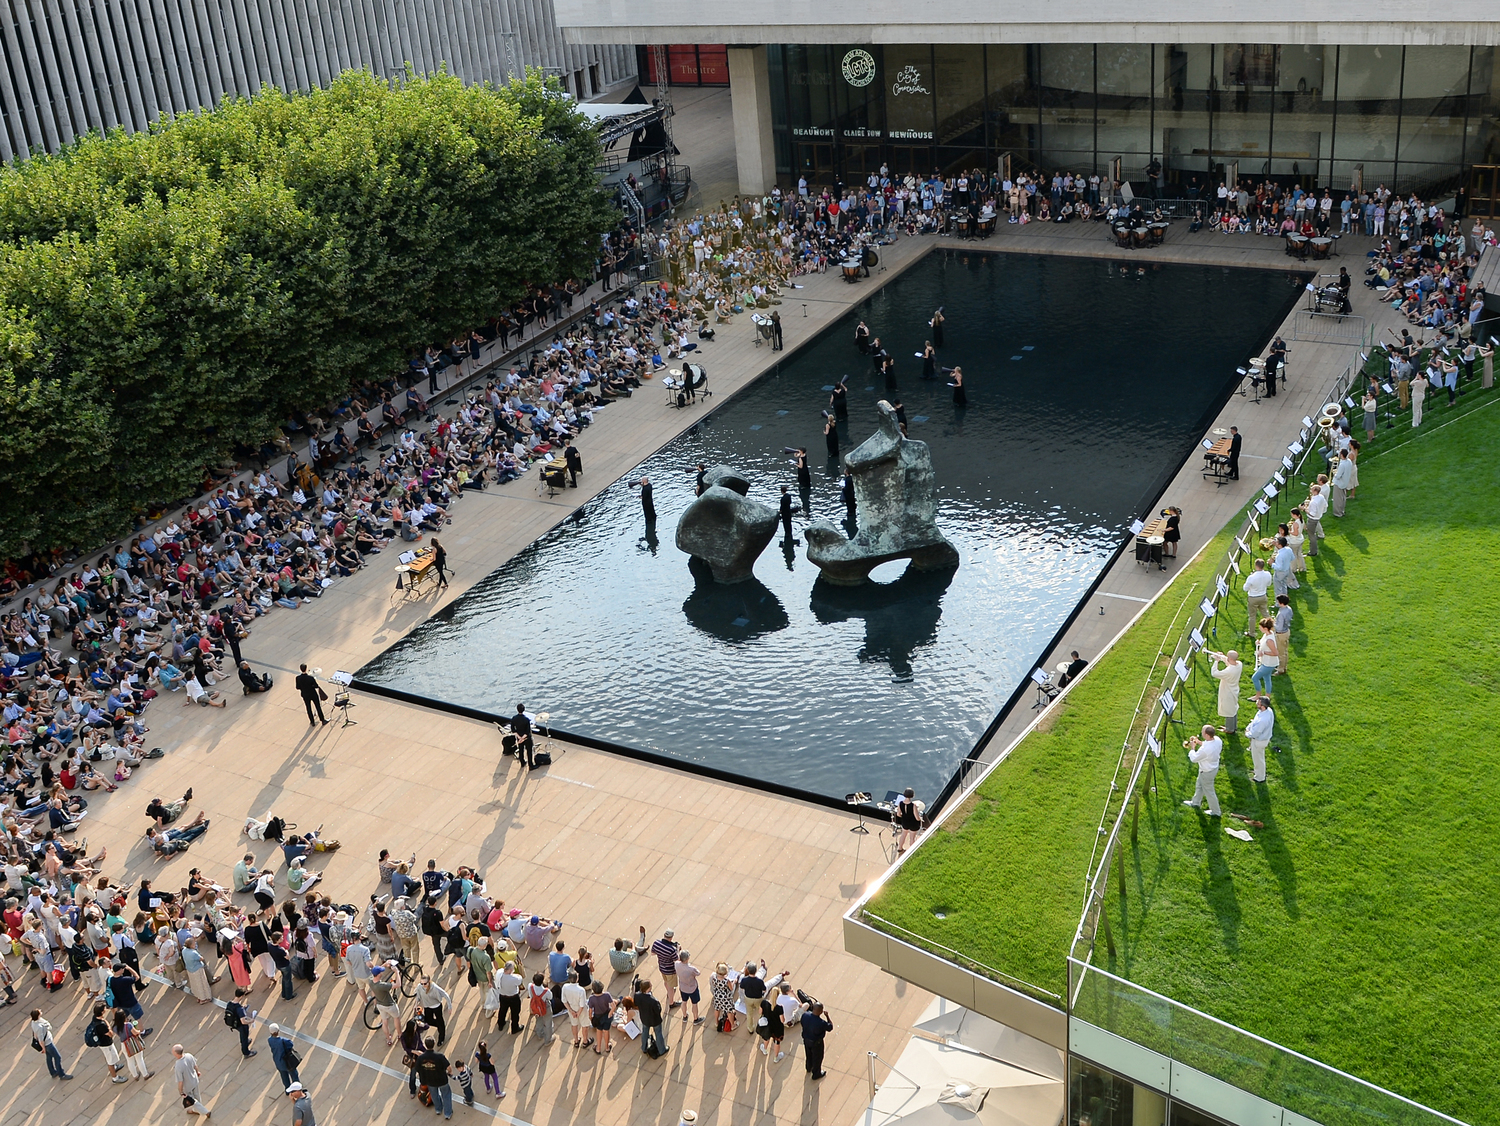 Lincoln Center Outdoor Performance of Sila